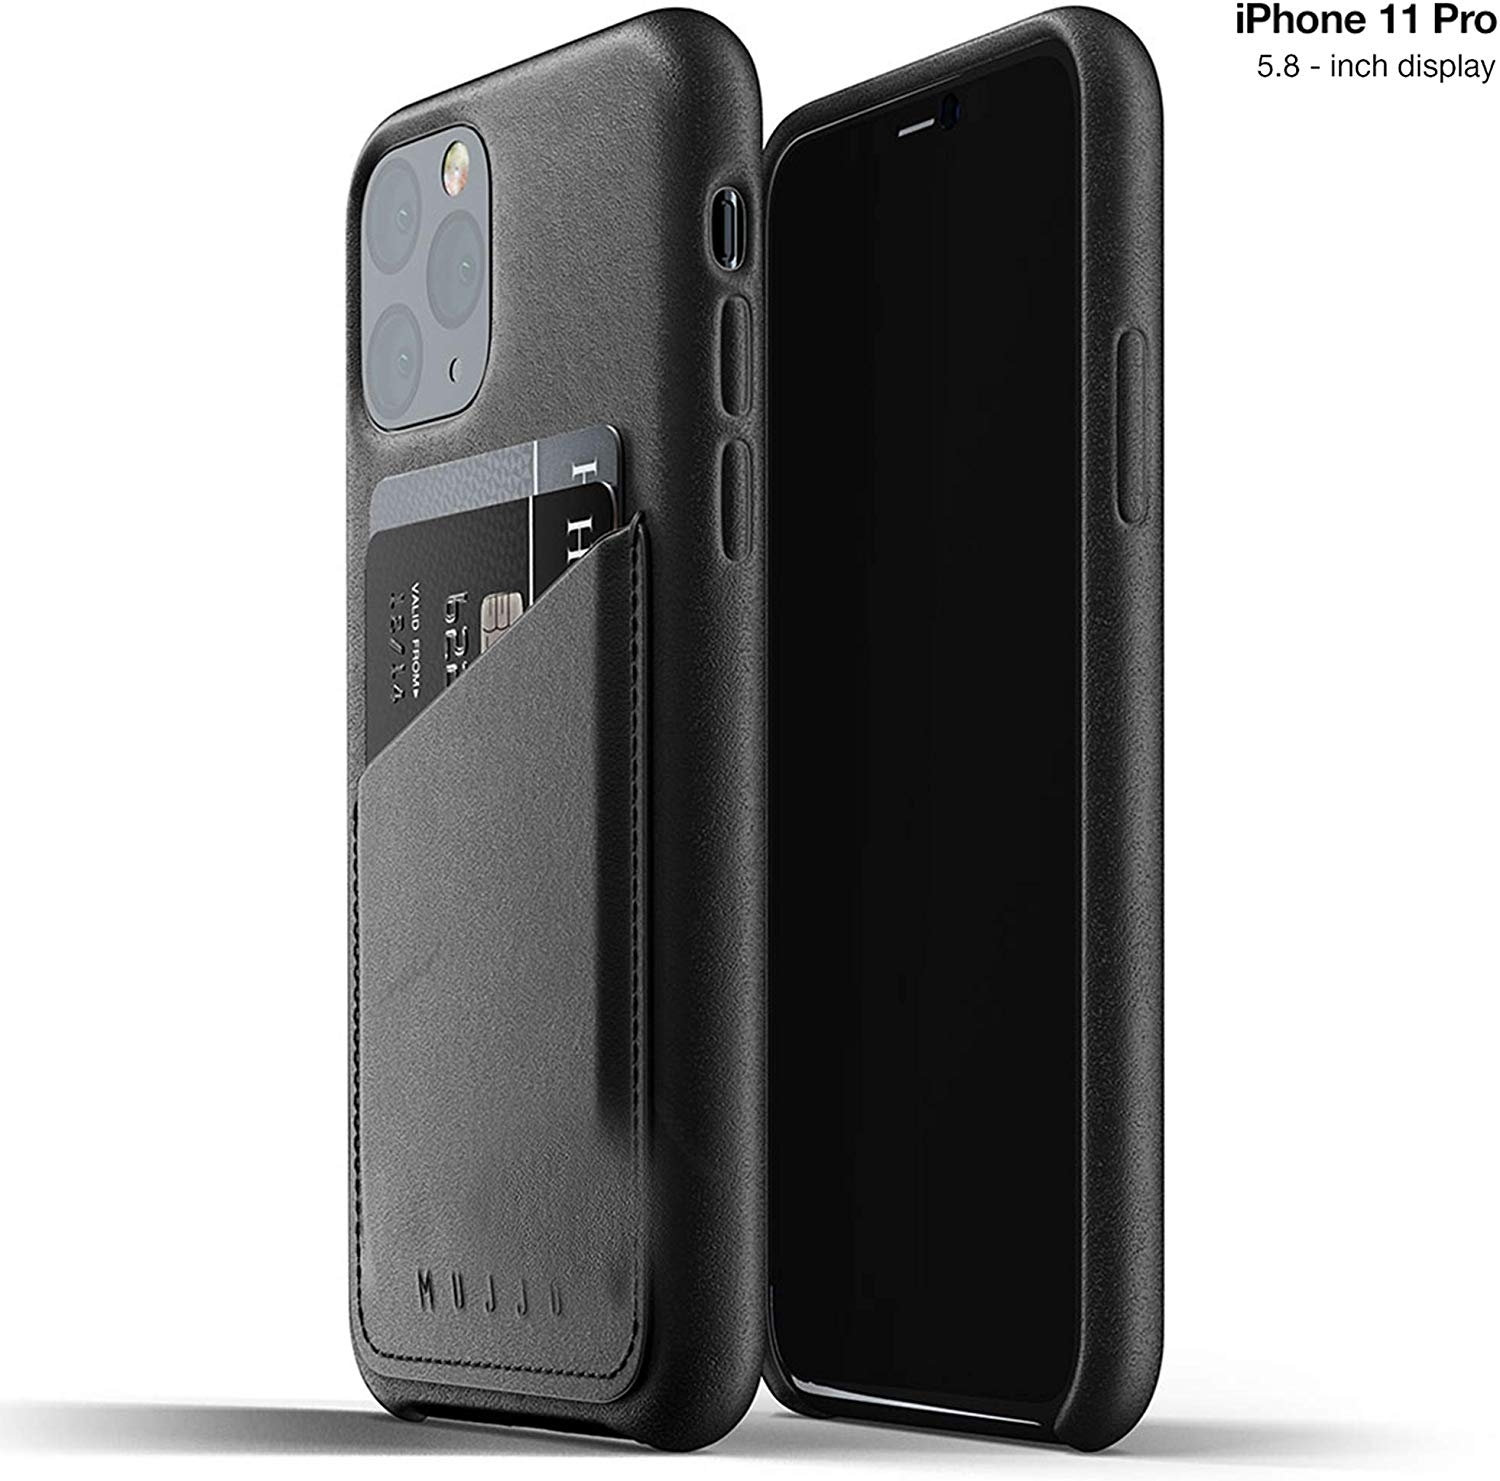 MUJJO Full Leather Wallet Case - Δερμάτινη Θήκη-Πορτοφόλι iPhone 11 Pro - Black (MUJJO-CL-002-BK)